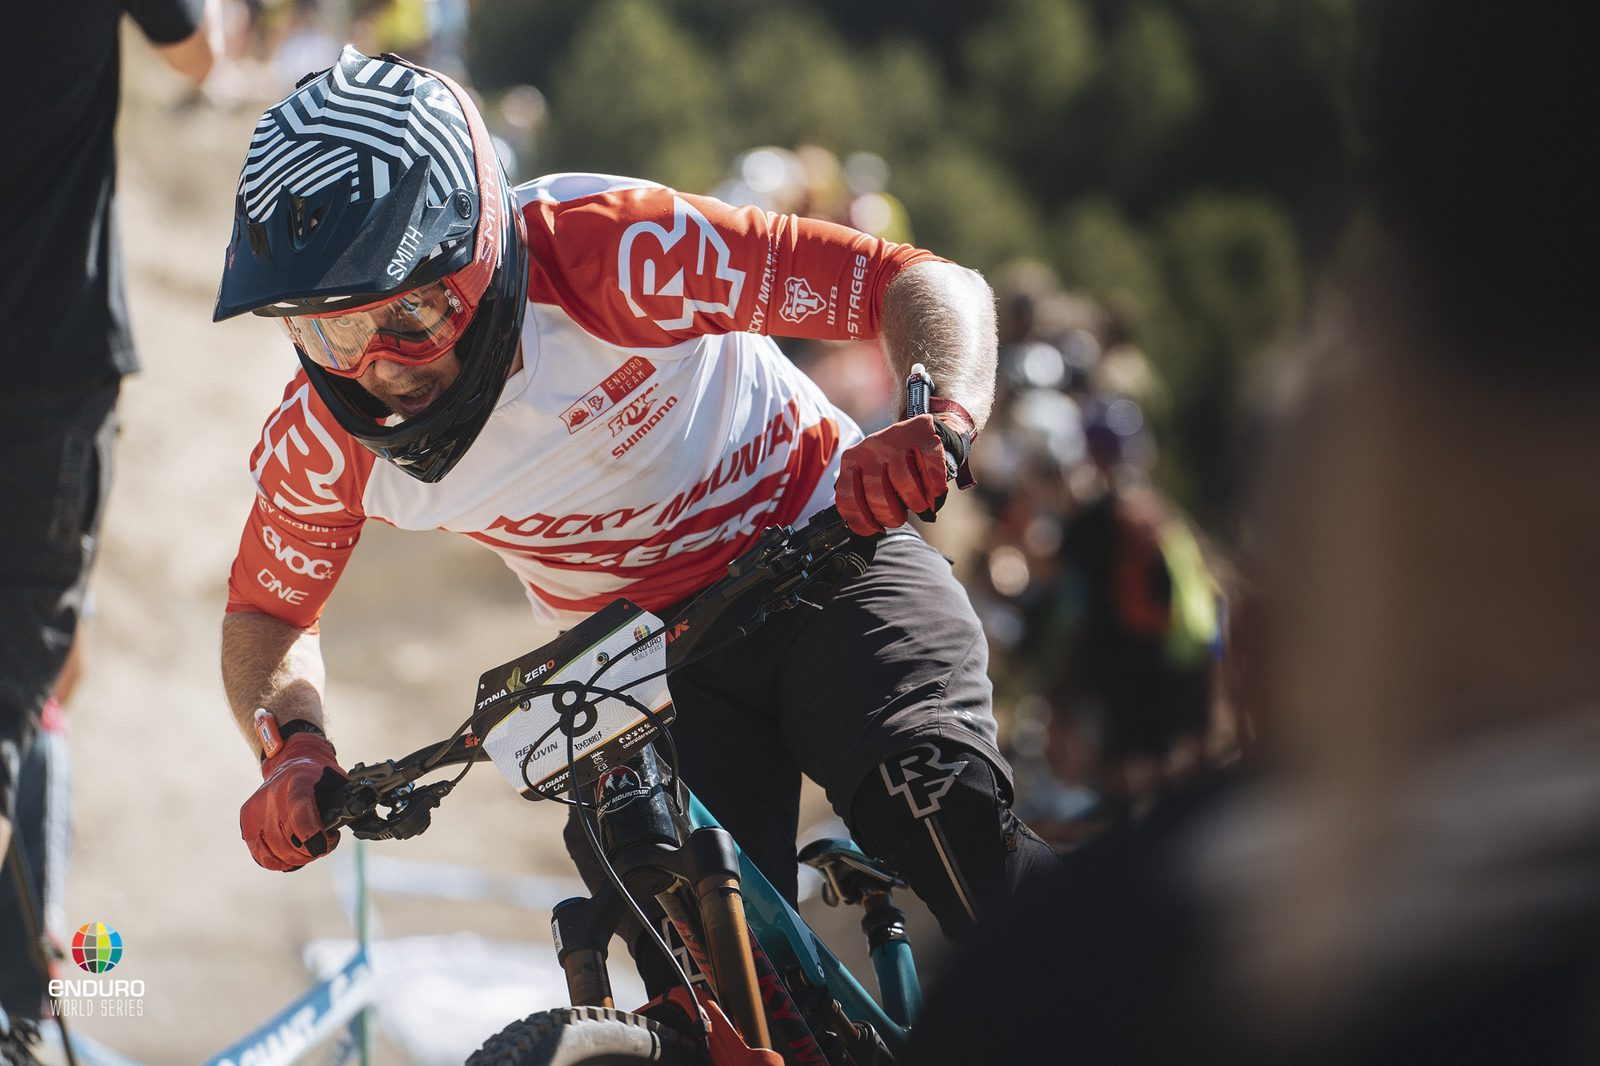 EWS Enduro World Series Ainsa Sobrarbe